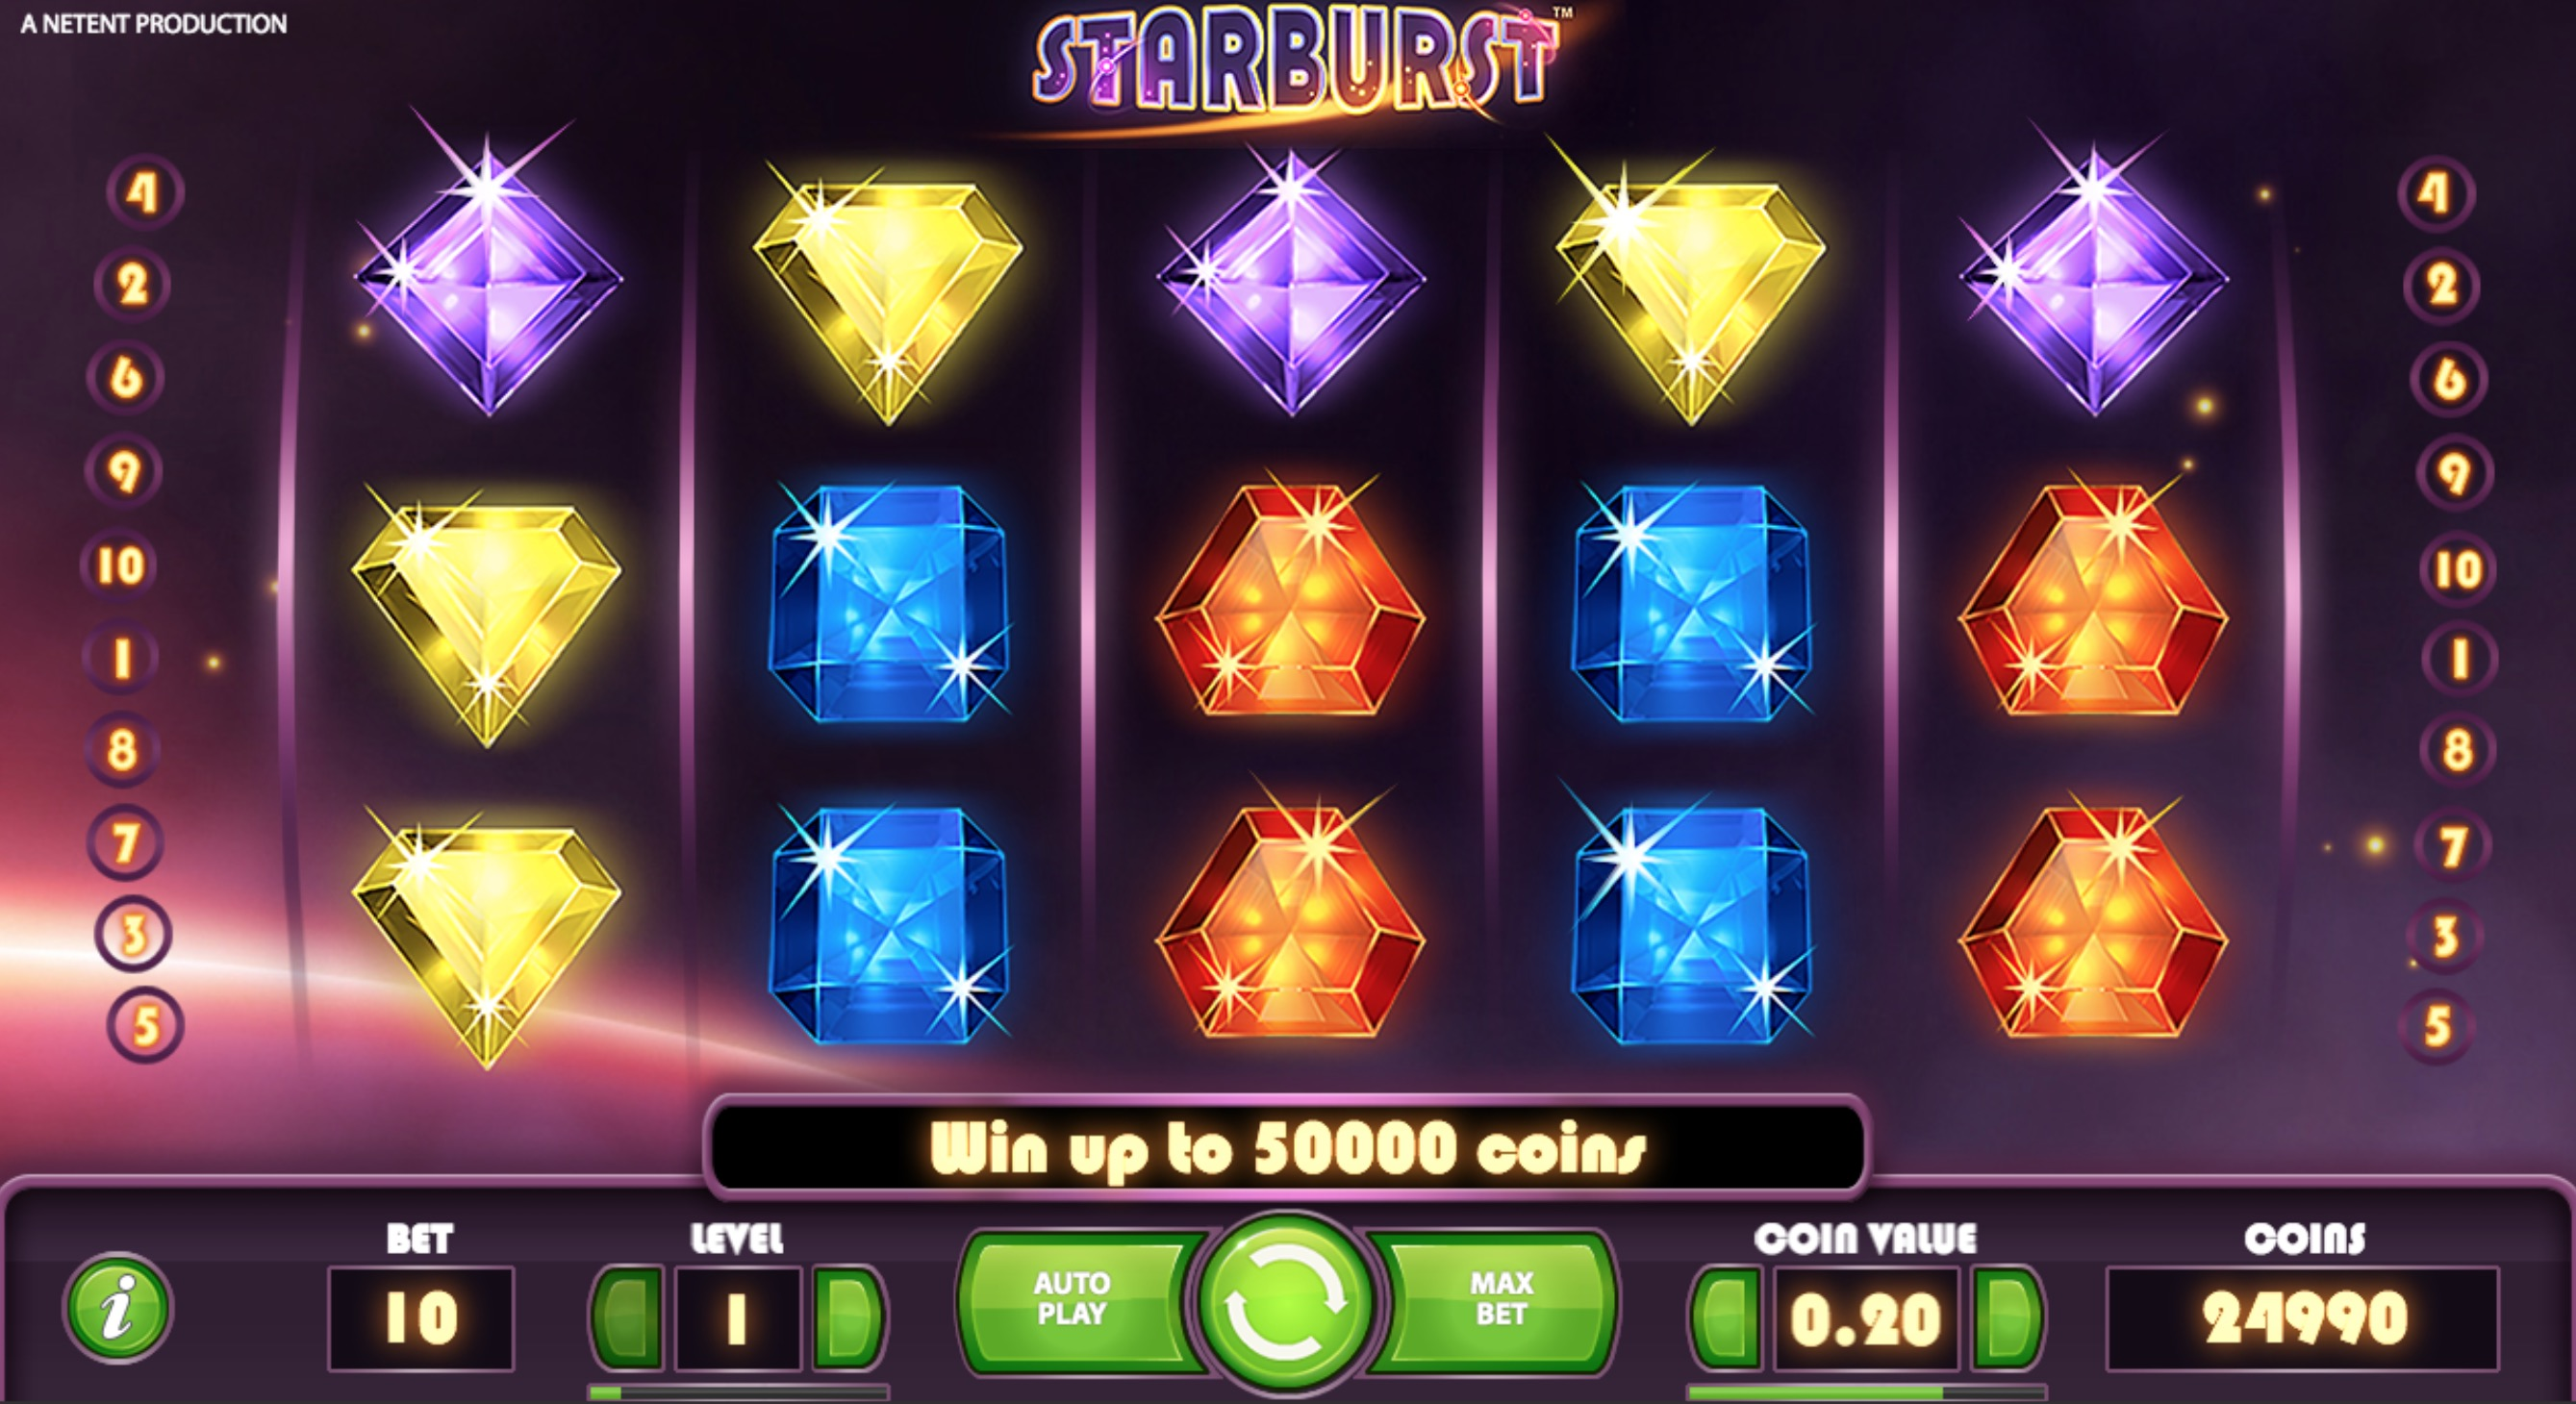 Gameplay Of Starburst